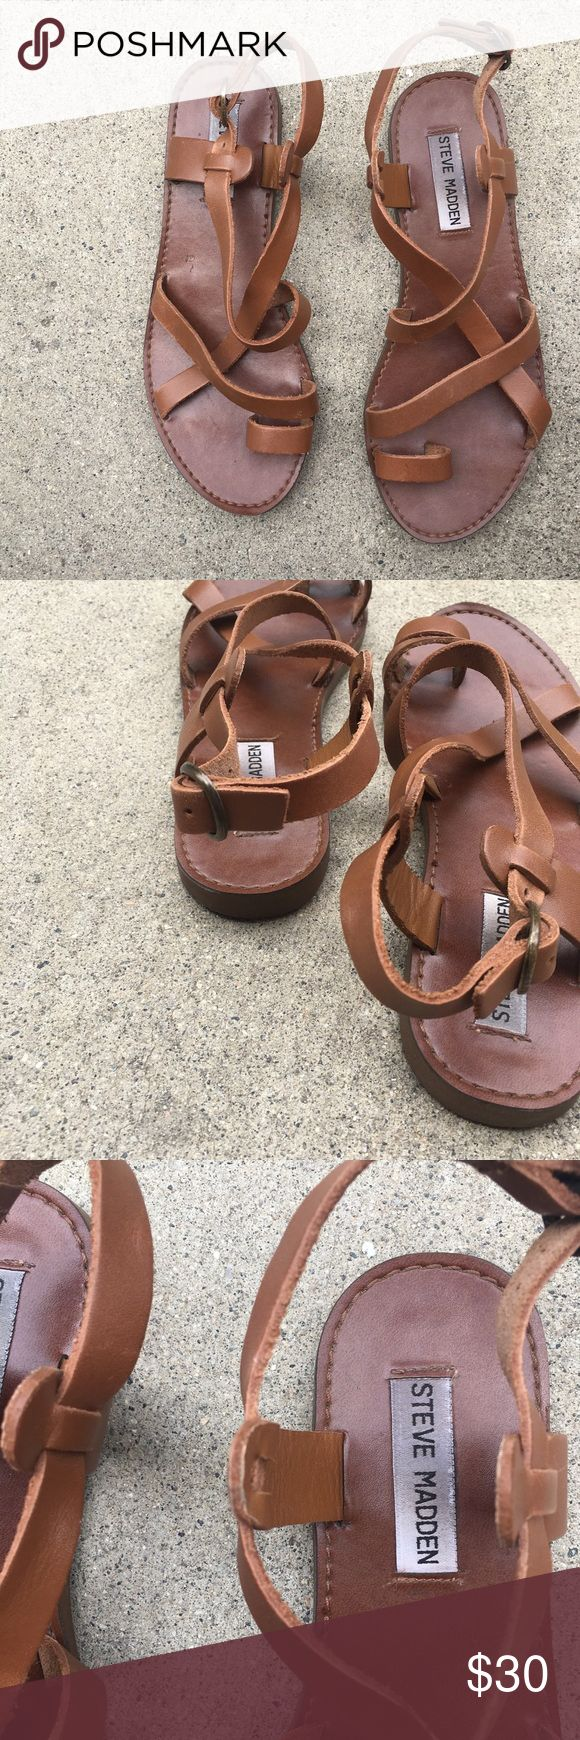 💥FLASHSALE💥 SteveMadden chestnut leather sandals Great condition. Worn 3x. Very minor scratch or scuff on the side strap. Not noticeable since it would be located on the side of the foot. Steve Madden Shoes Sandals